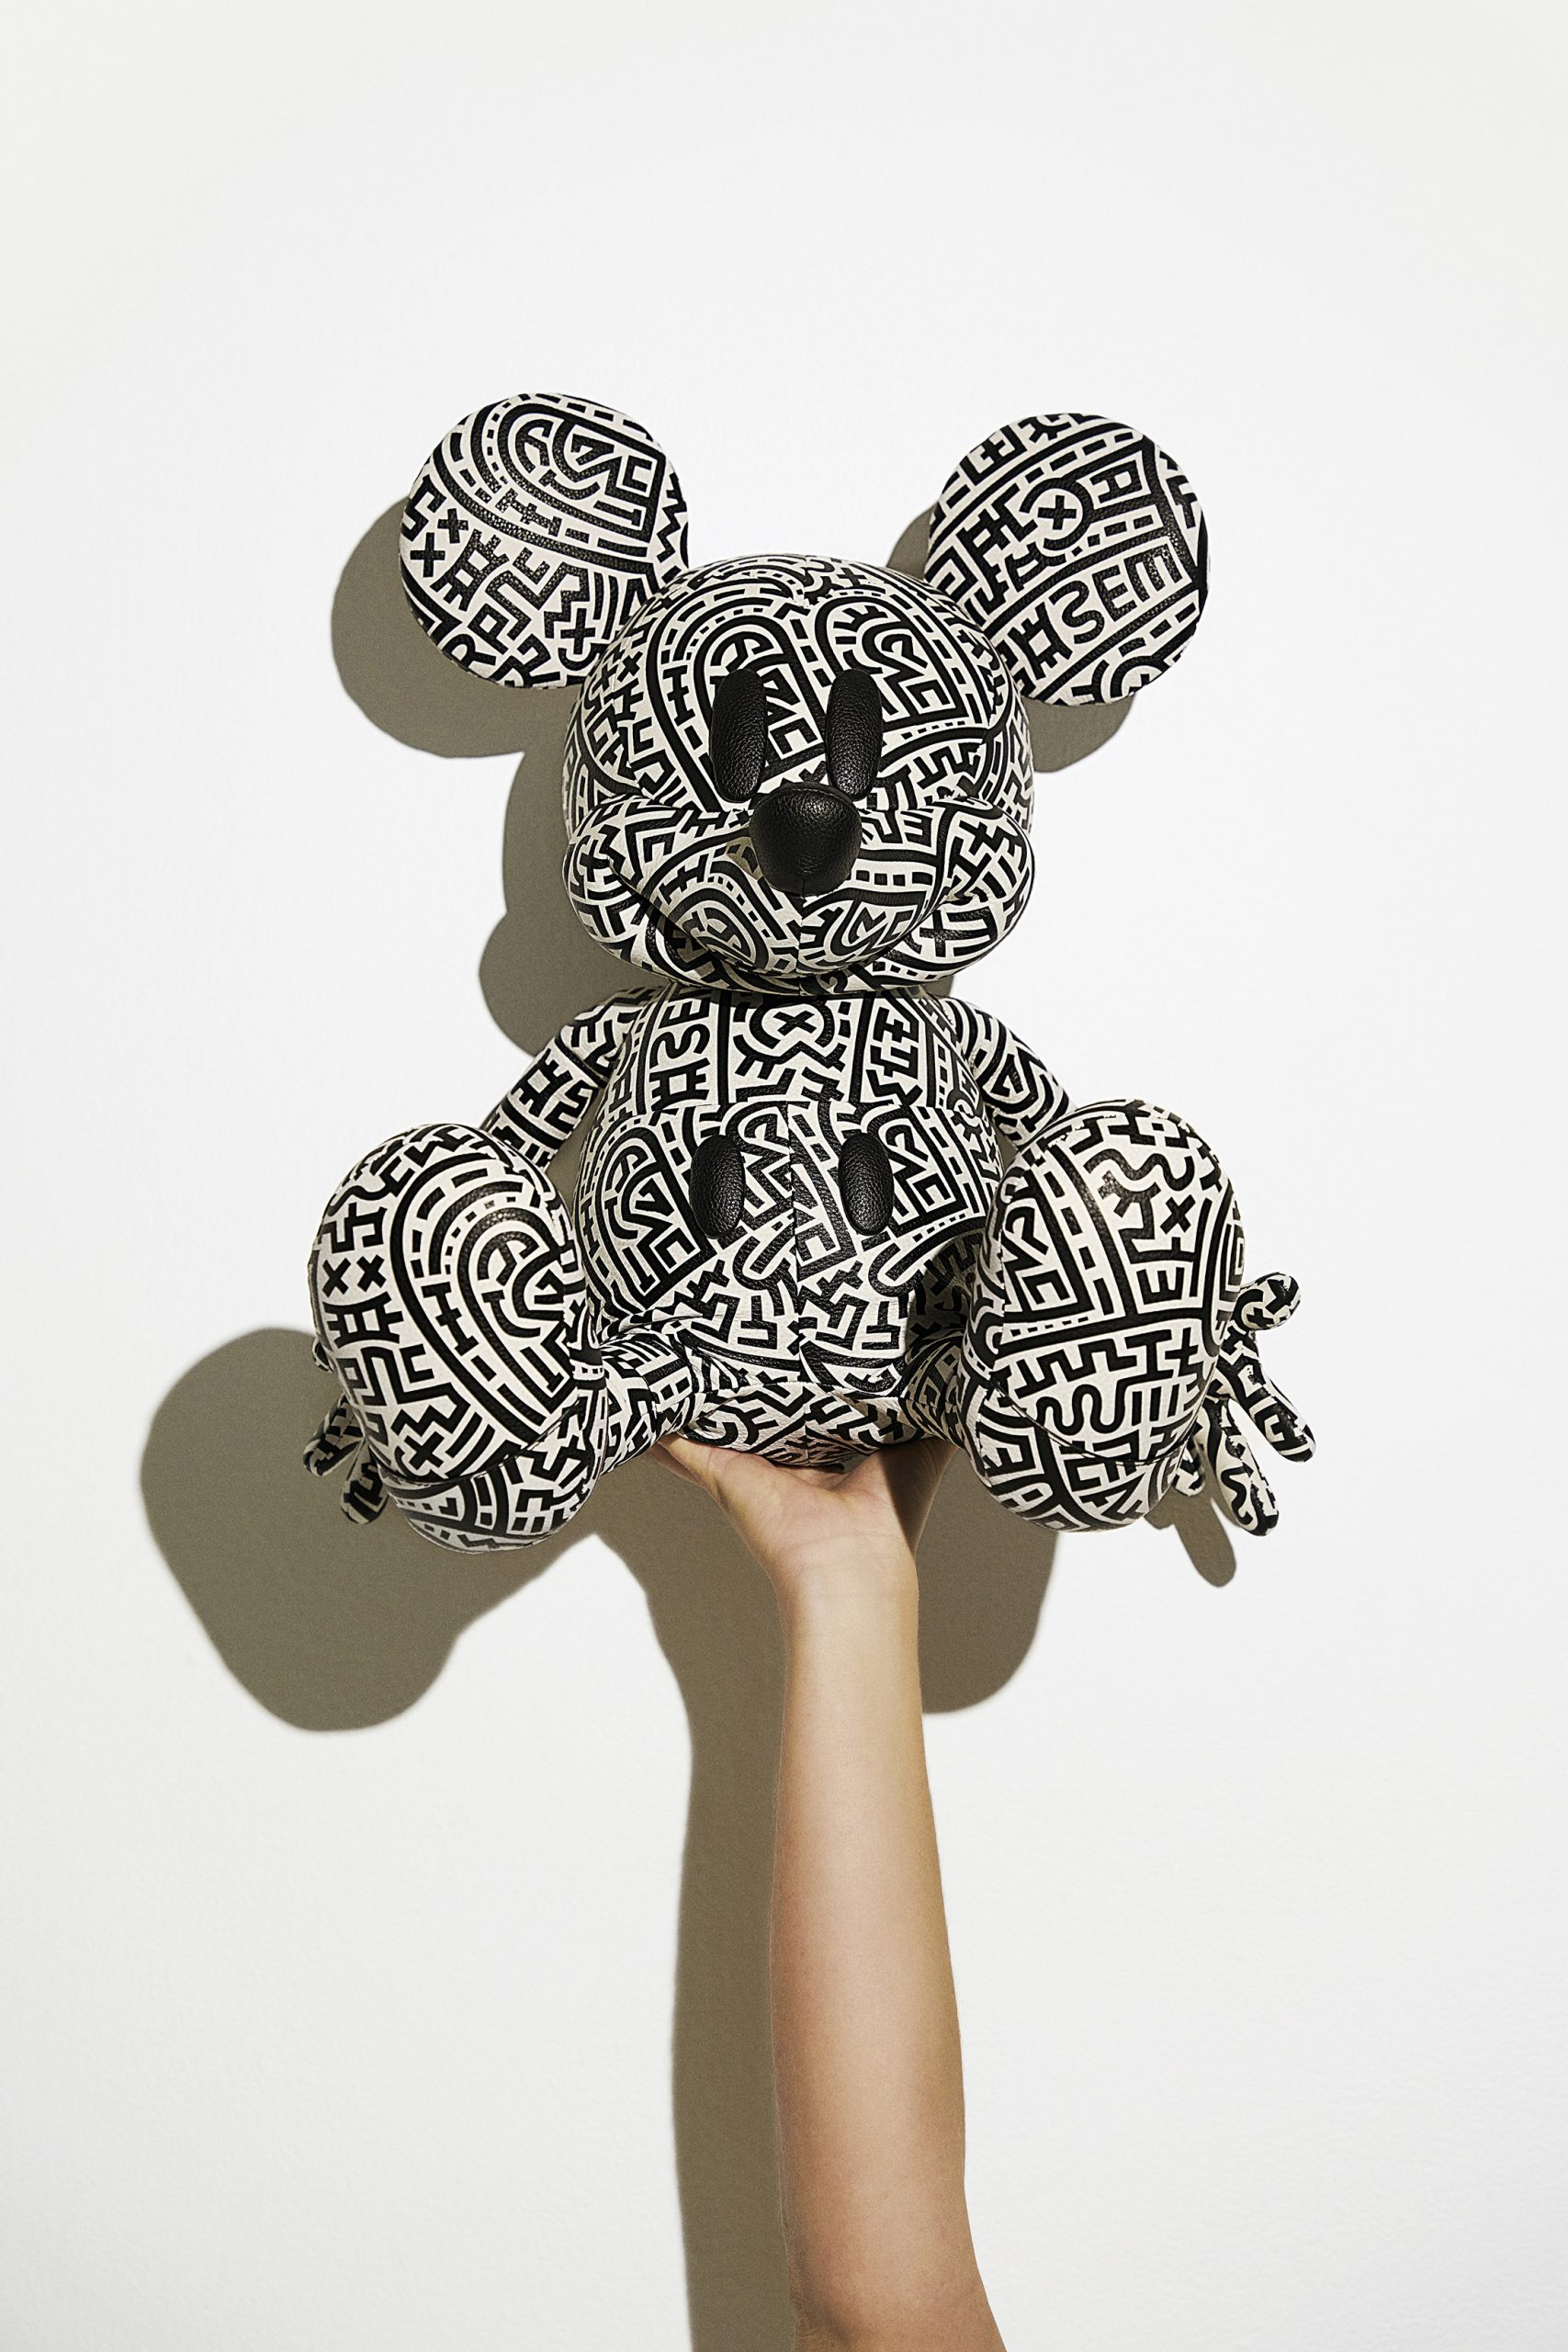 Coach Mickey Mouse x Keith Haring Cole Sprouse & Kaia Gerber